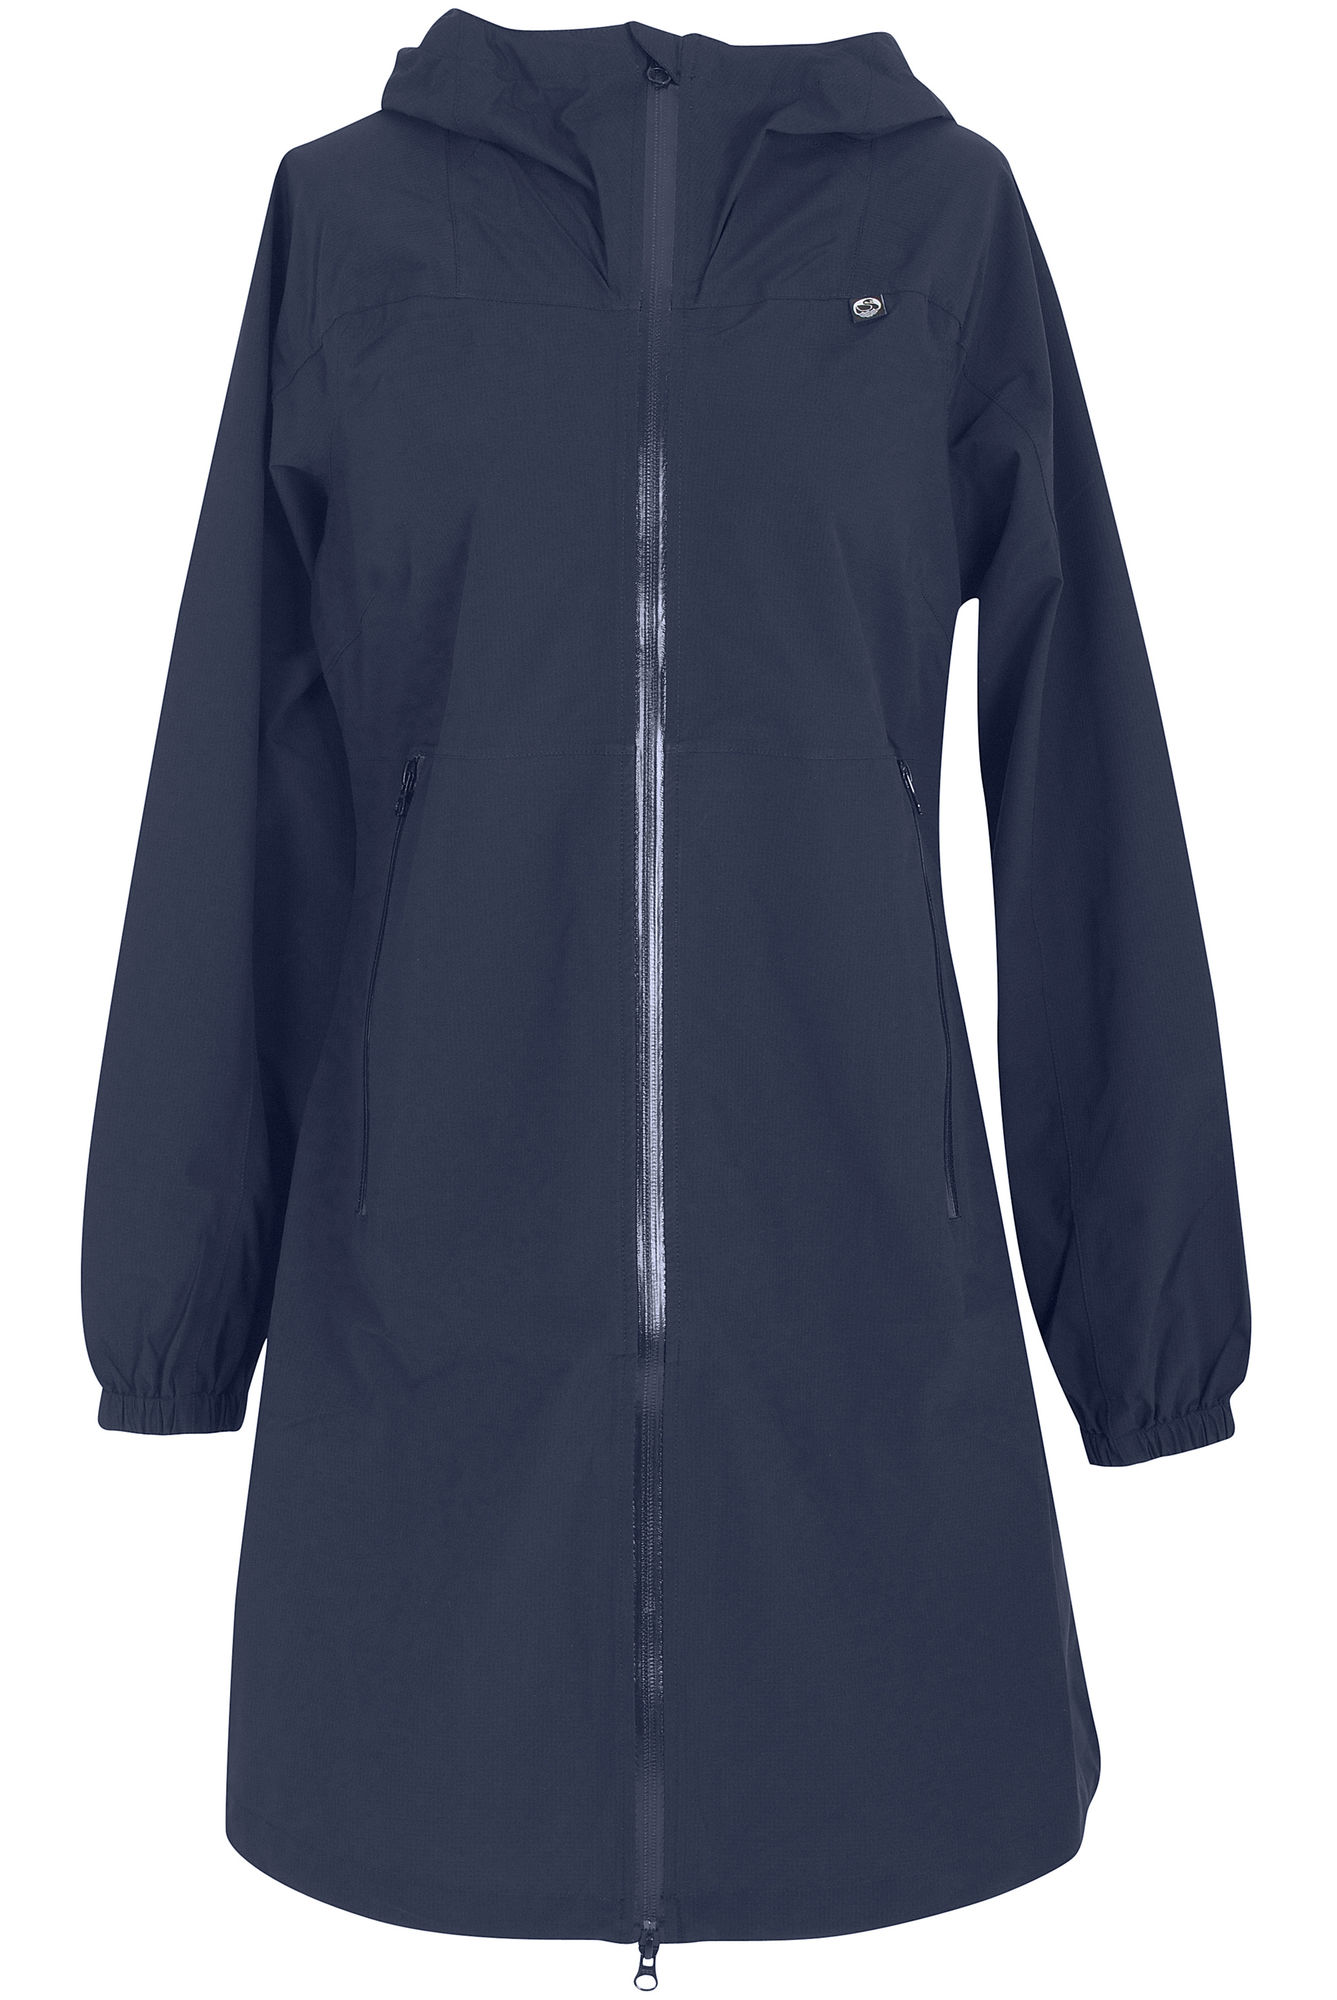 Vesterhav Rainjacket Navy